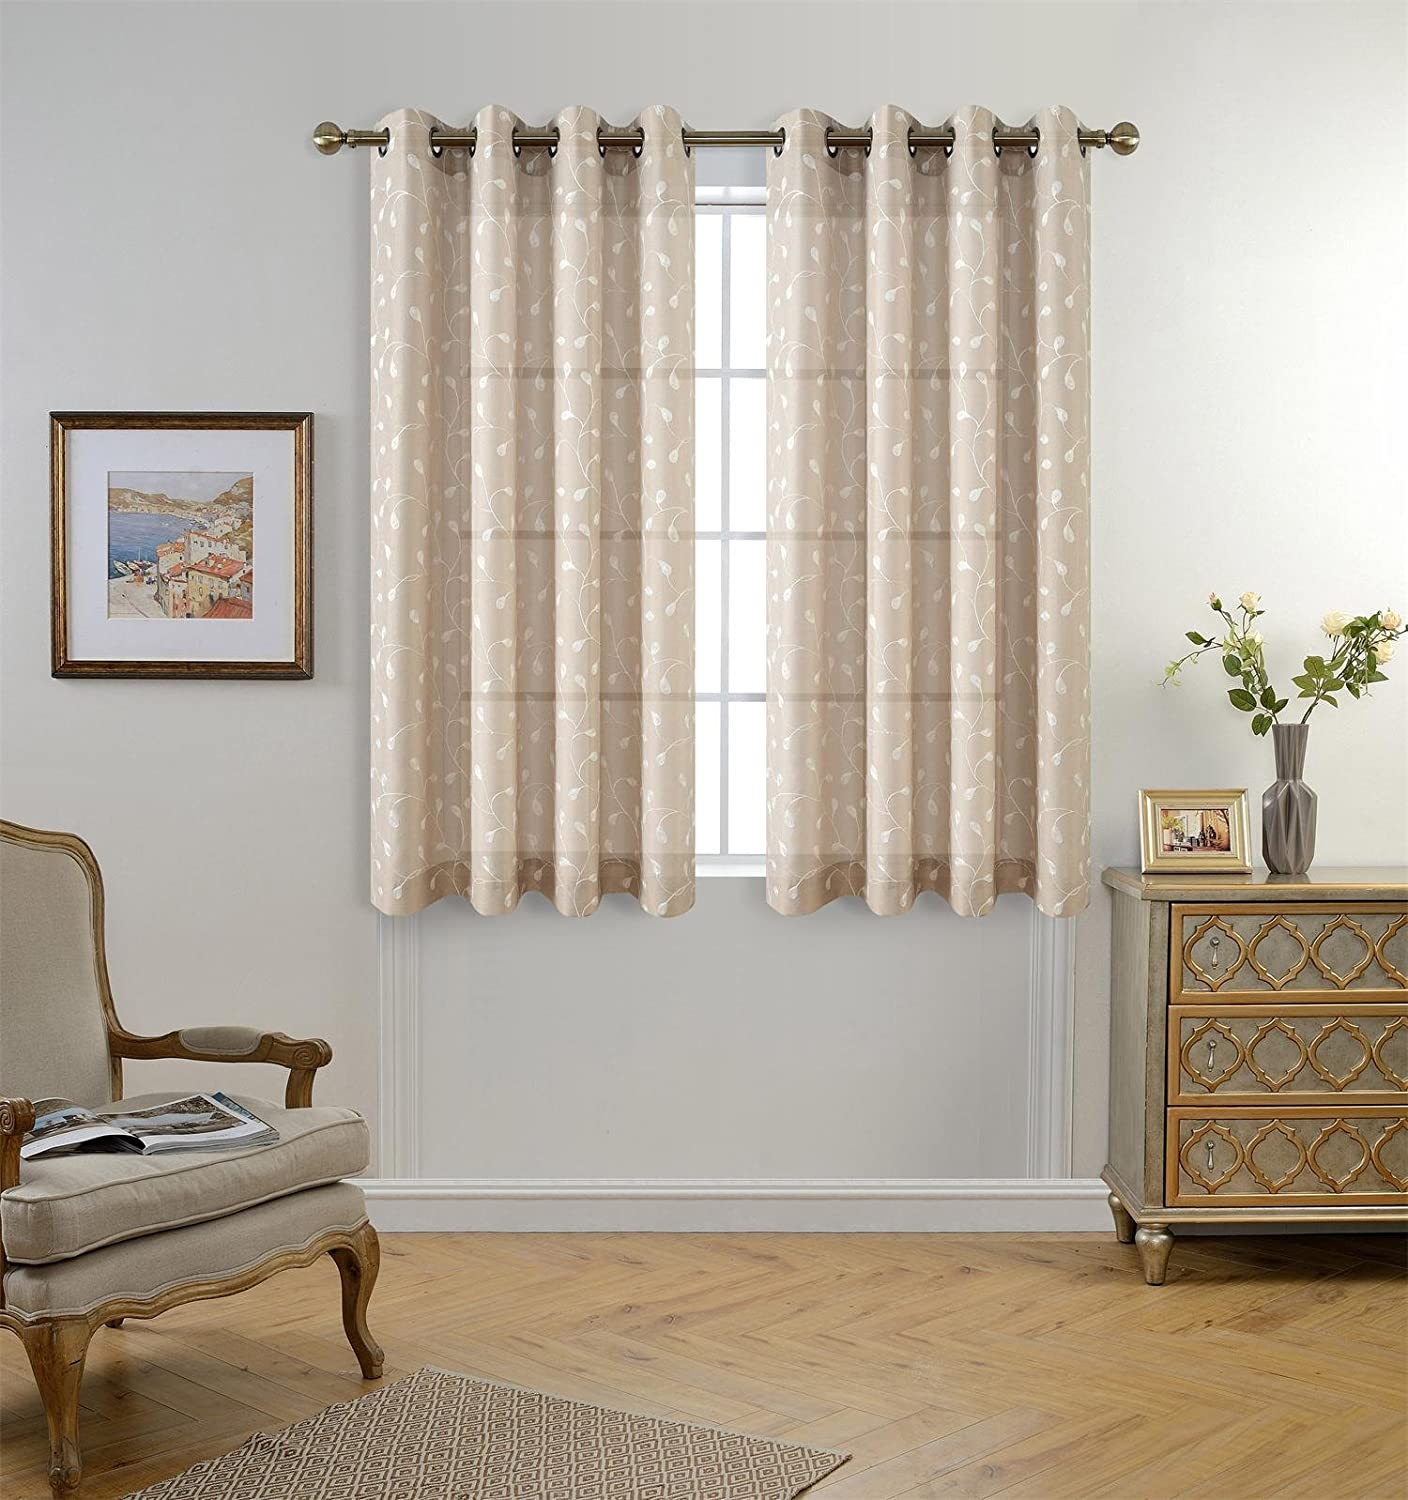 Miuco Floral Embroidery Semi Sheer Curtains Faux Linen Grommet Window Curtains